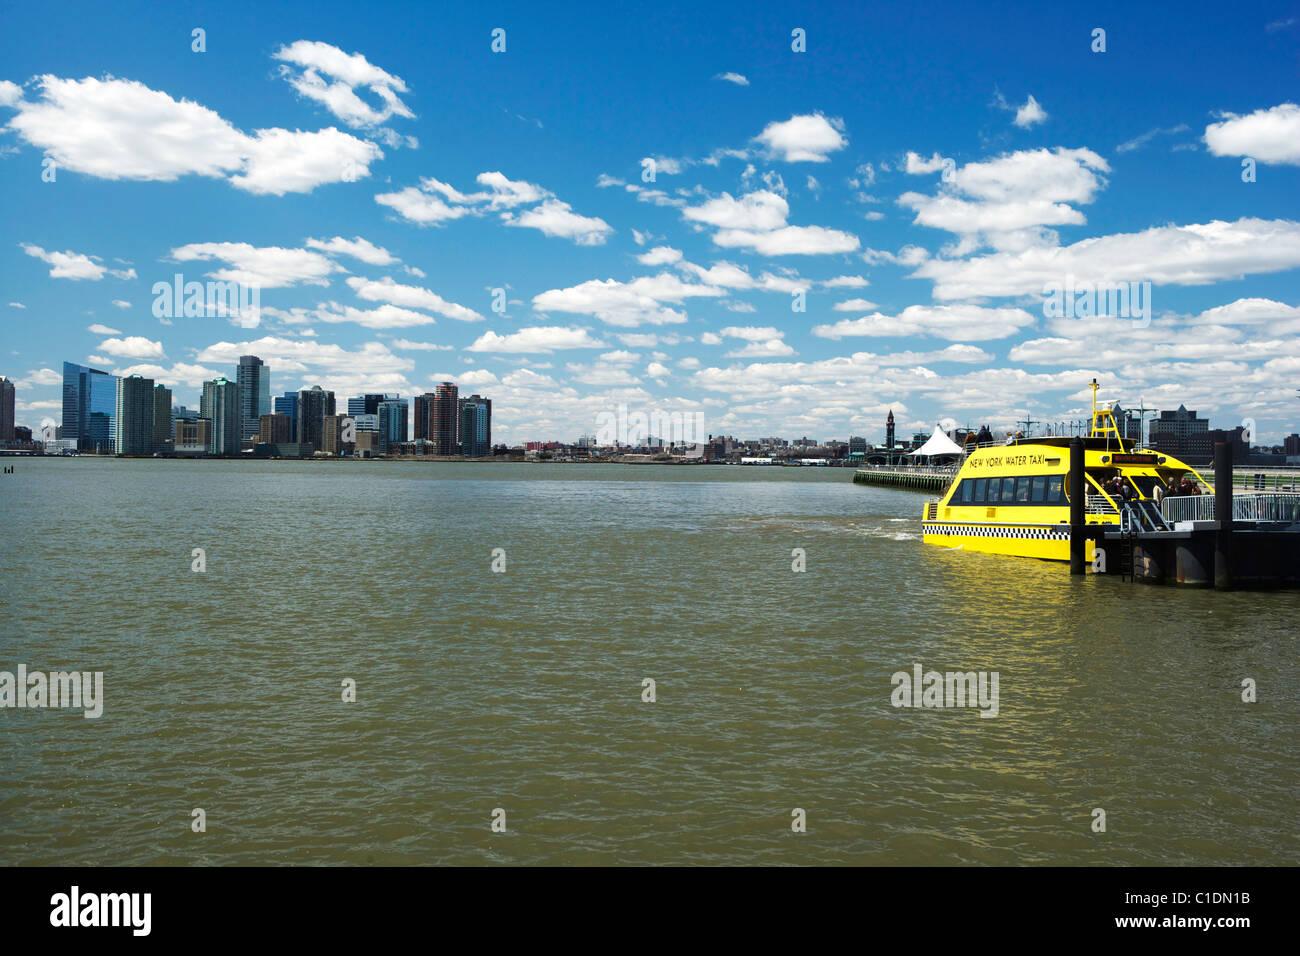 New York Skyline and a yellow water taxi on the Hudson River - Stock Image